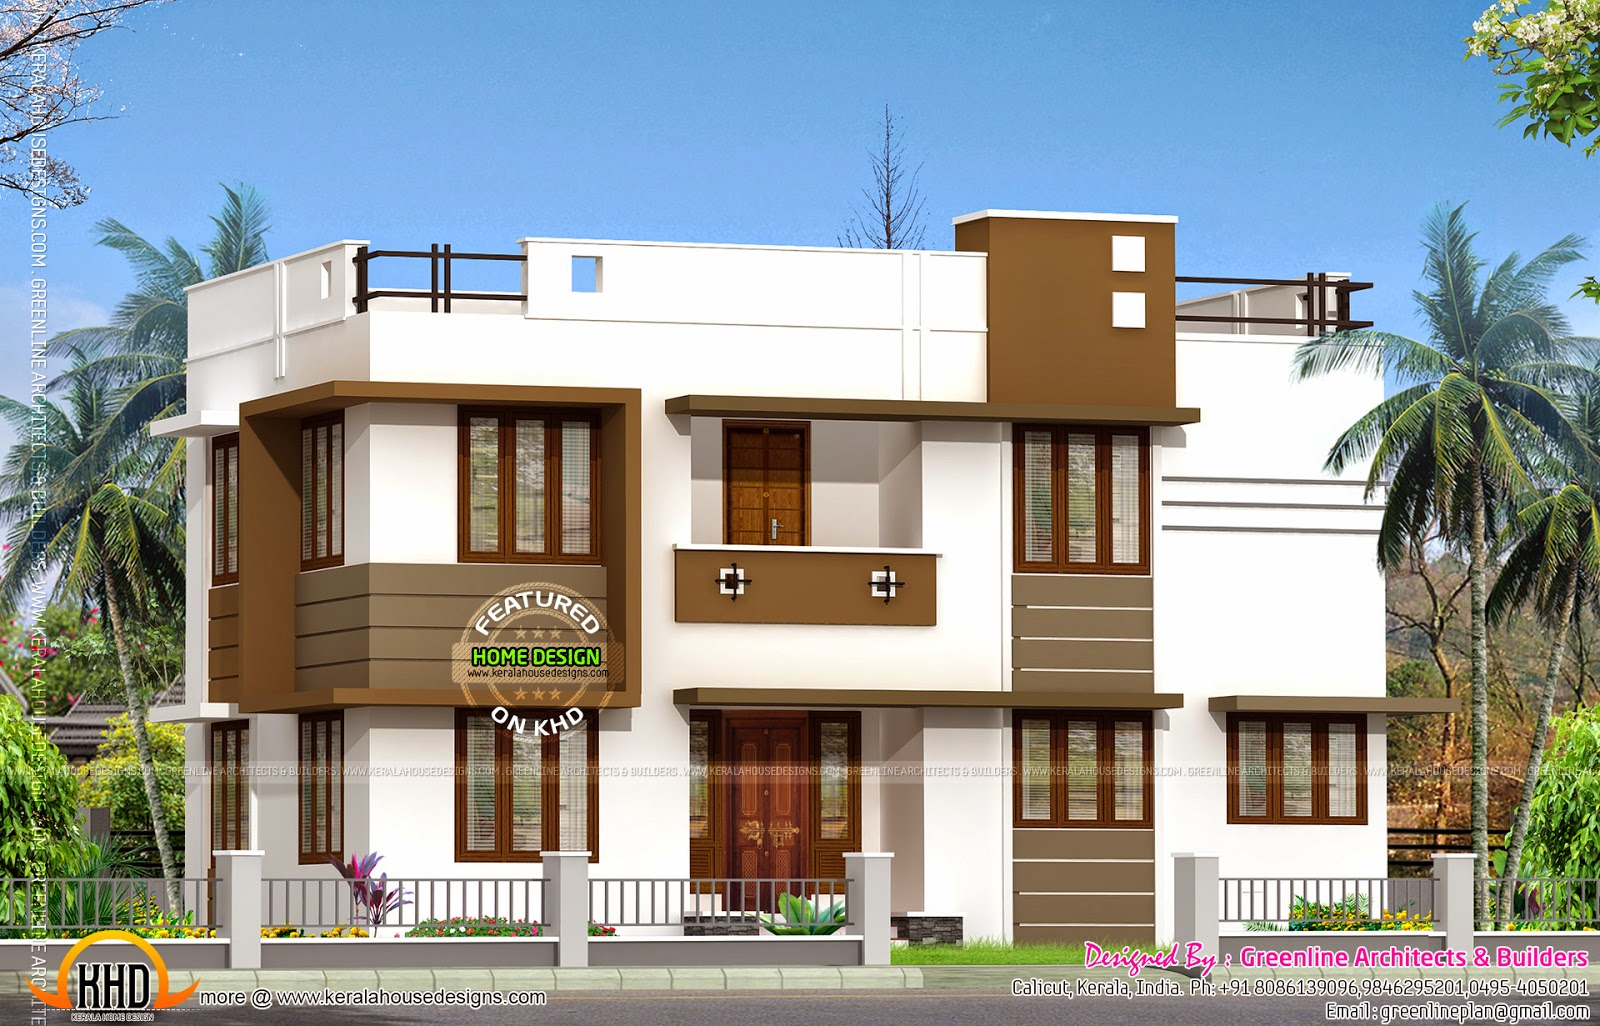 August 2014 kerala home design and floor plans for Low cost house plans in kerala with images